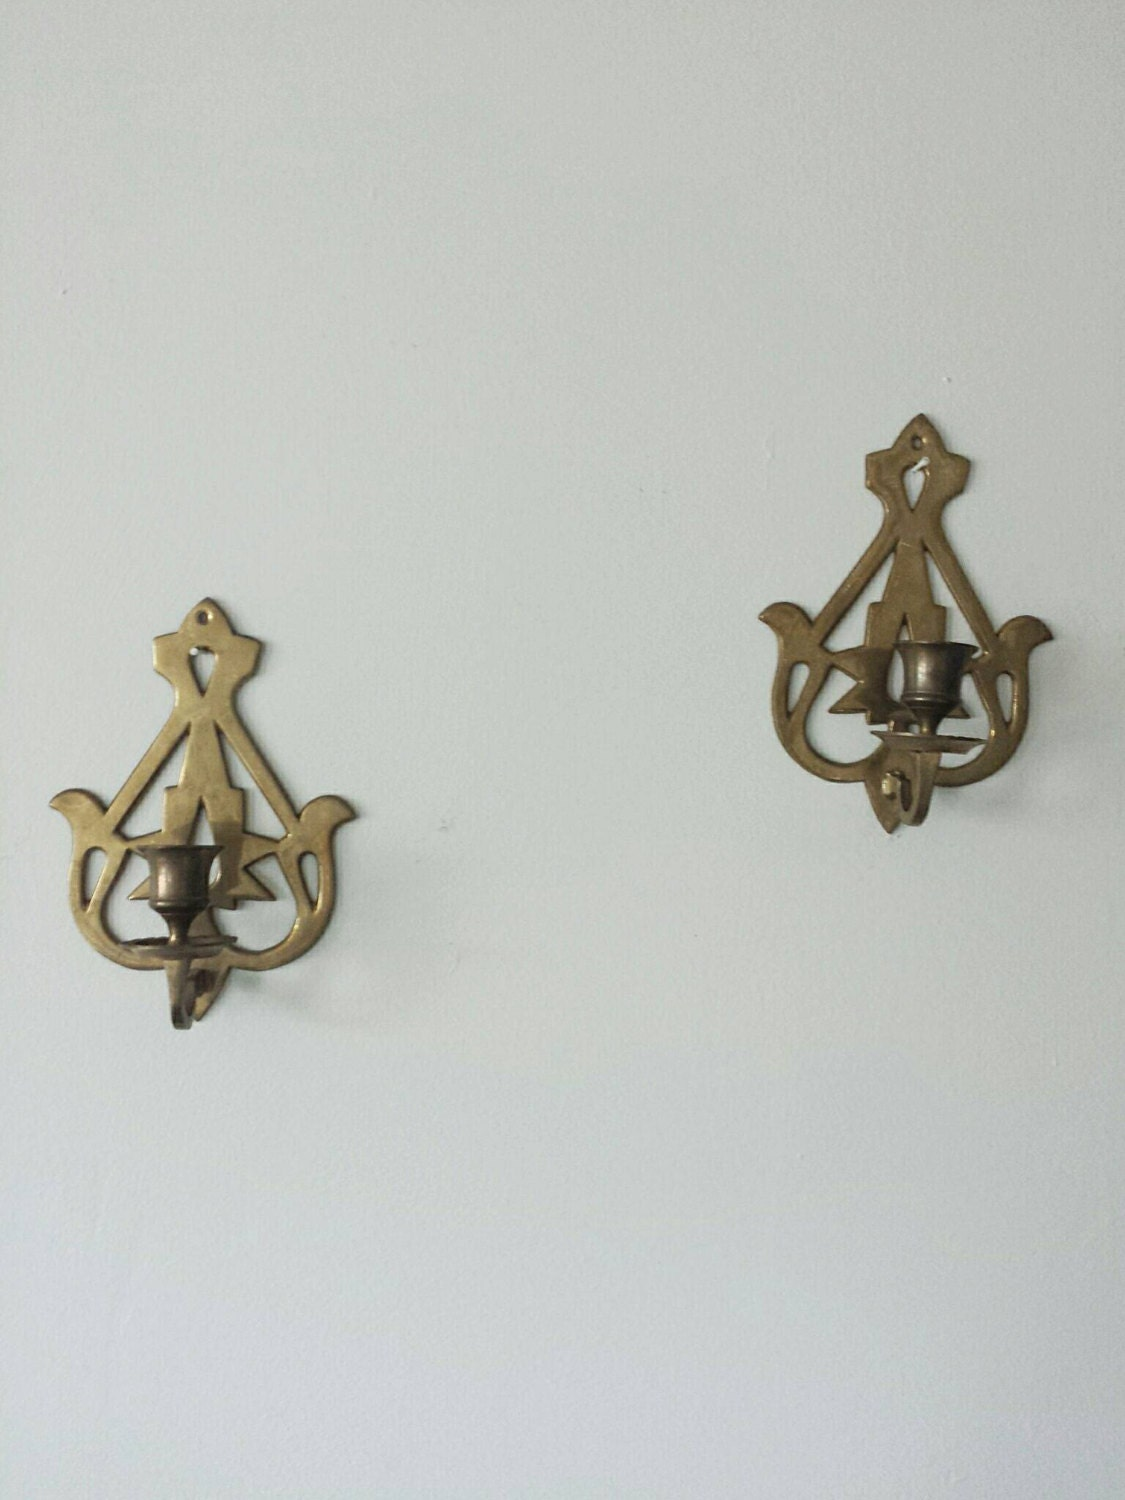 Brass Candle Sconce Pair Sconces Candle Sconce Vintage Wall